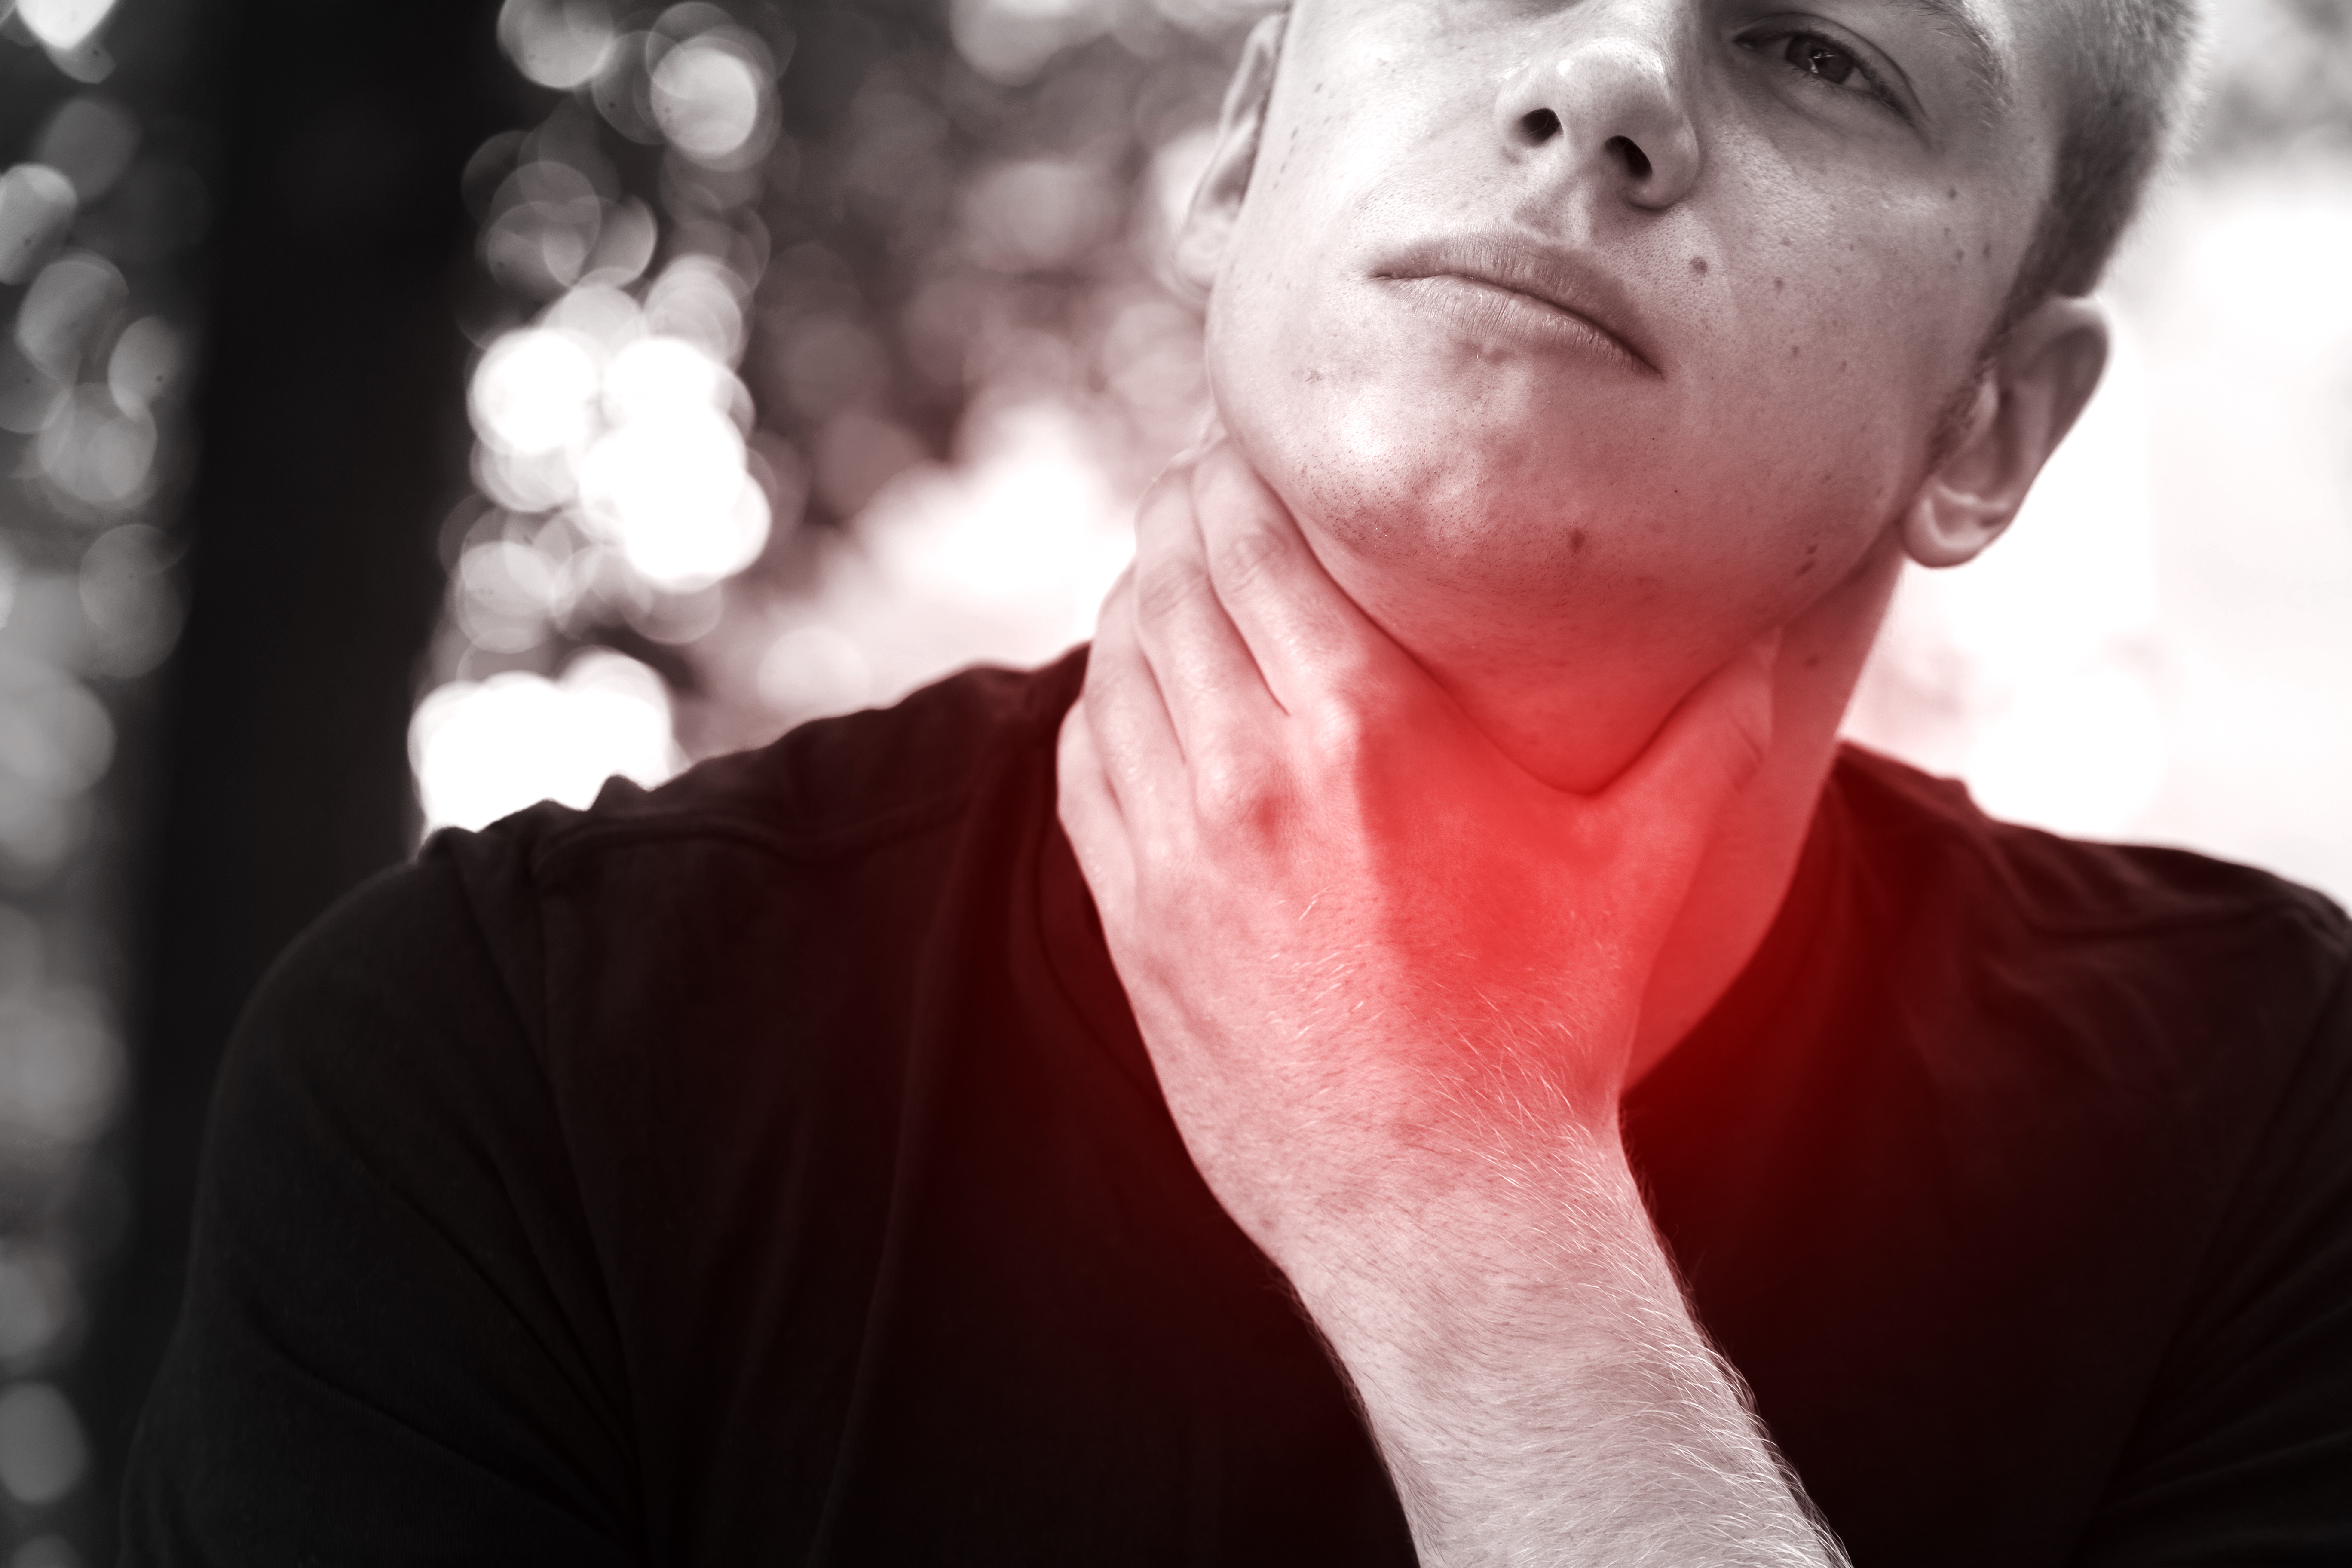 Can You Have Acid Reflux in the Throat but no Heartburn?